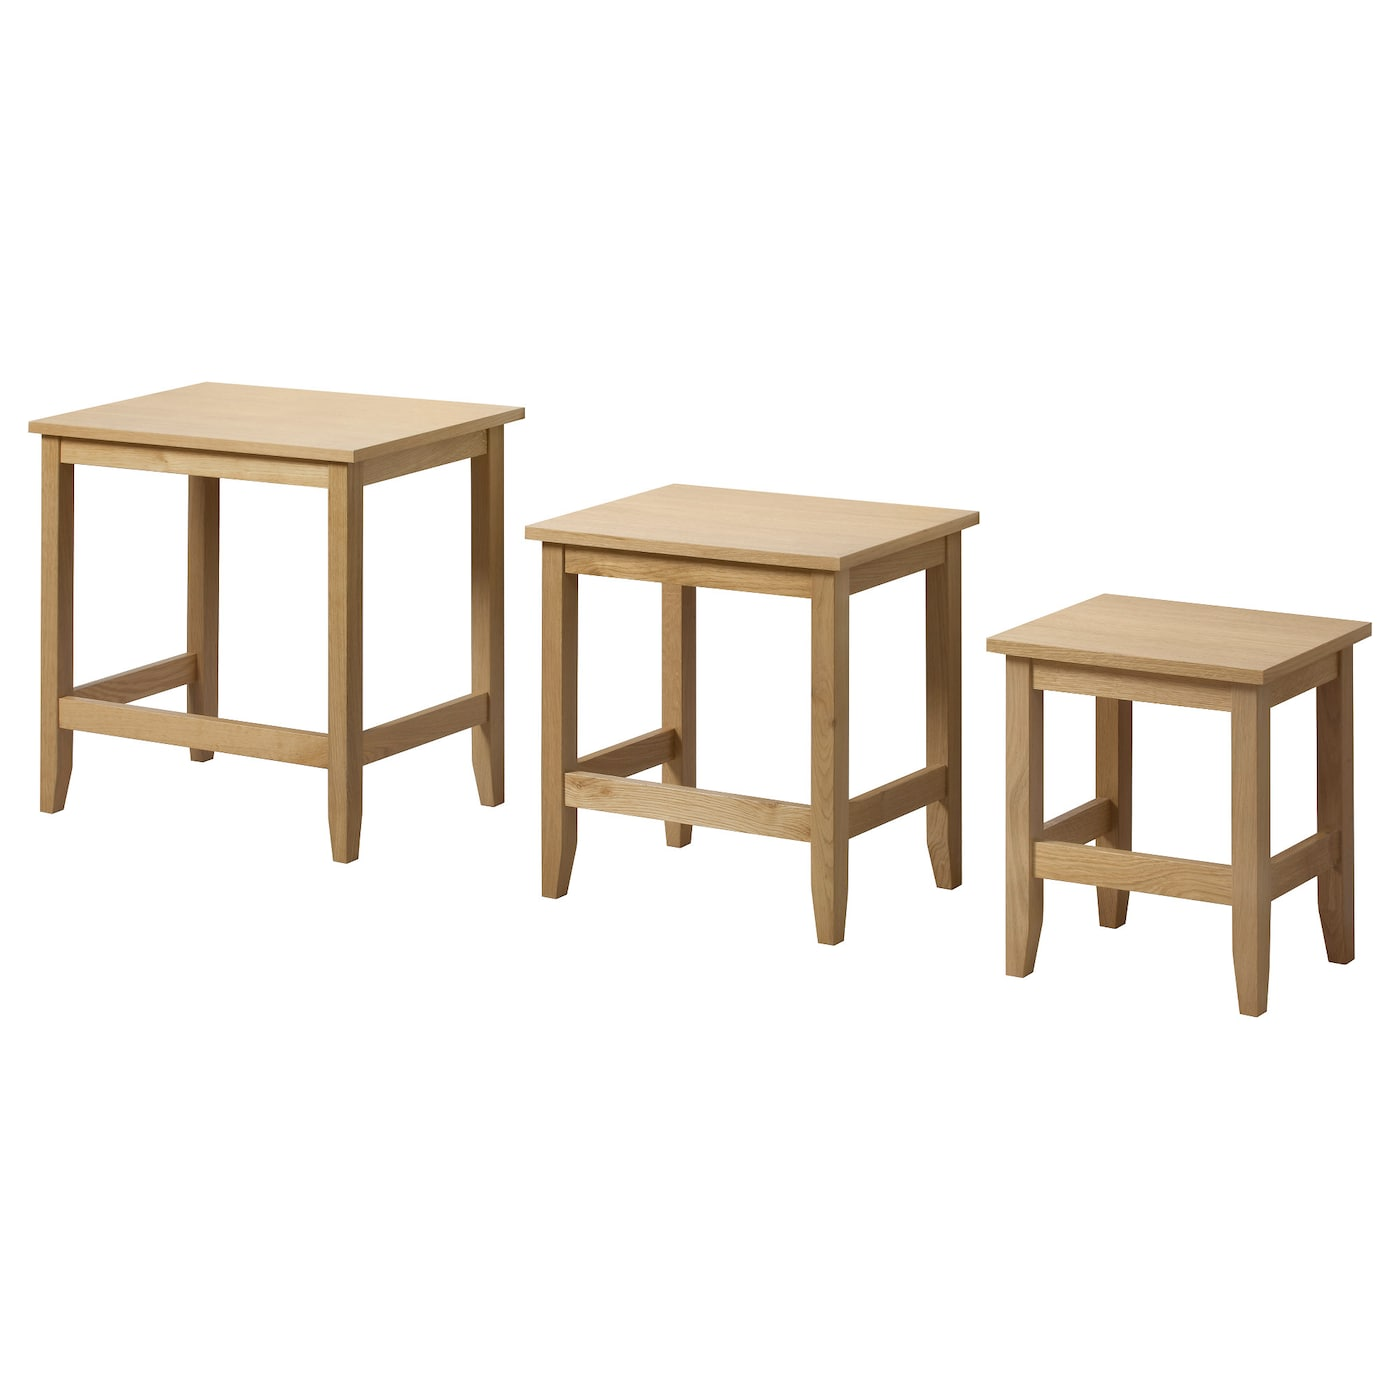 IKEA SKOGHALL nest of tables, set of 3 Can be pushed together to save space